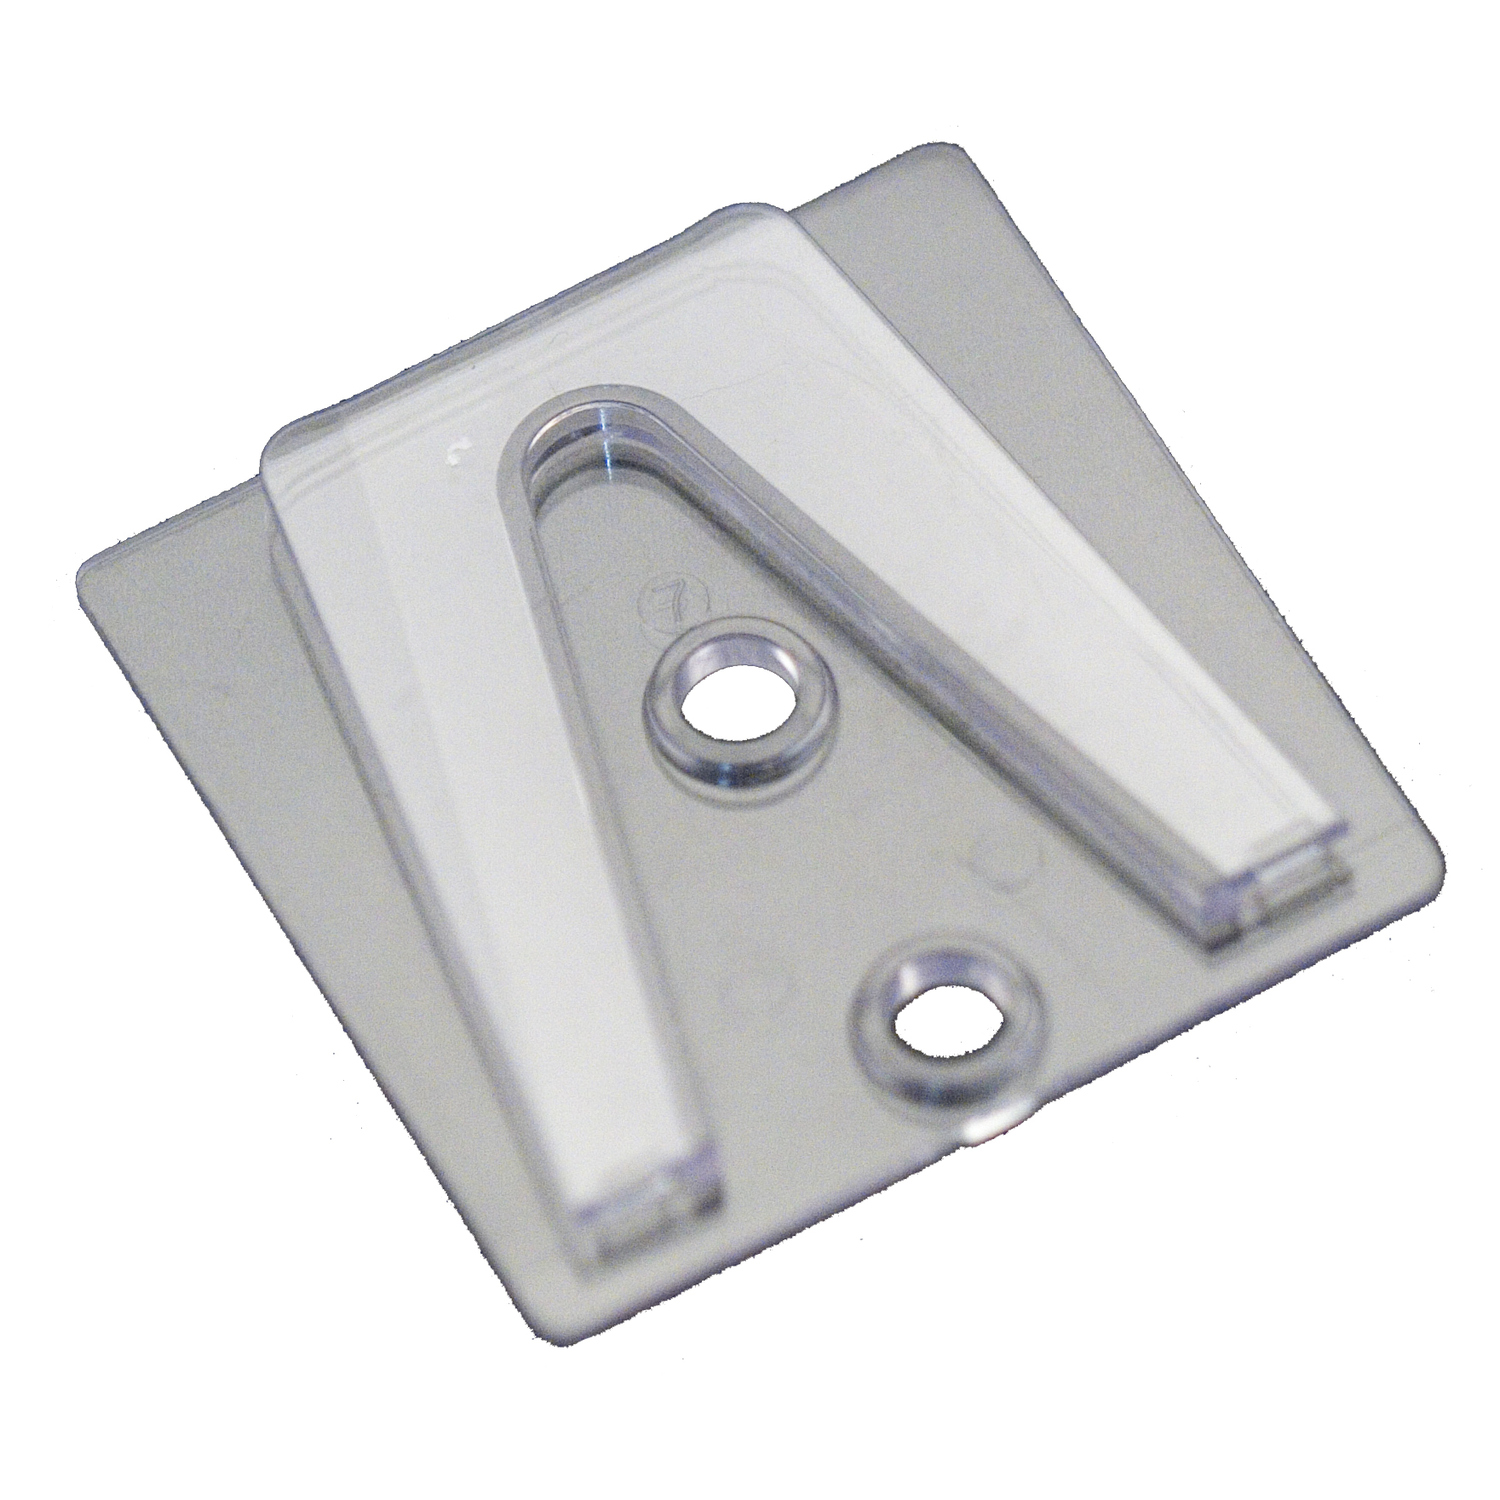 holiday lighting outlet surface clip holds c7 or c9 s in an upright direction pack of 100 walmart com